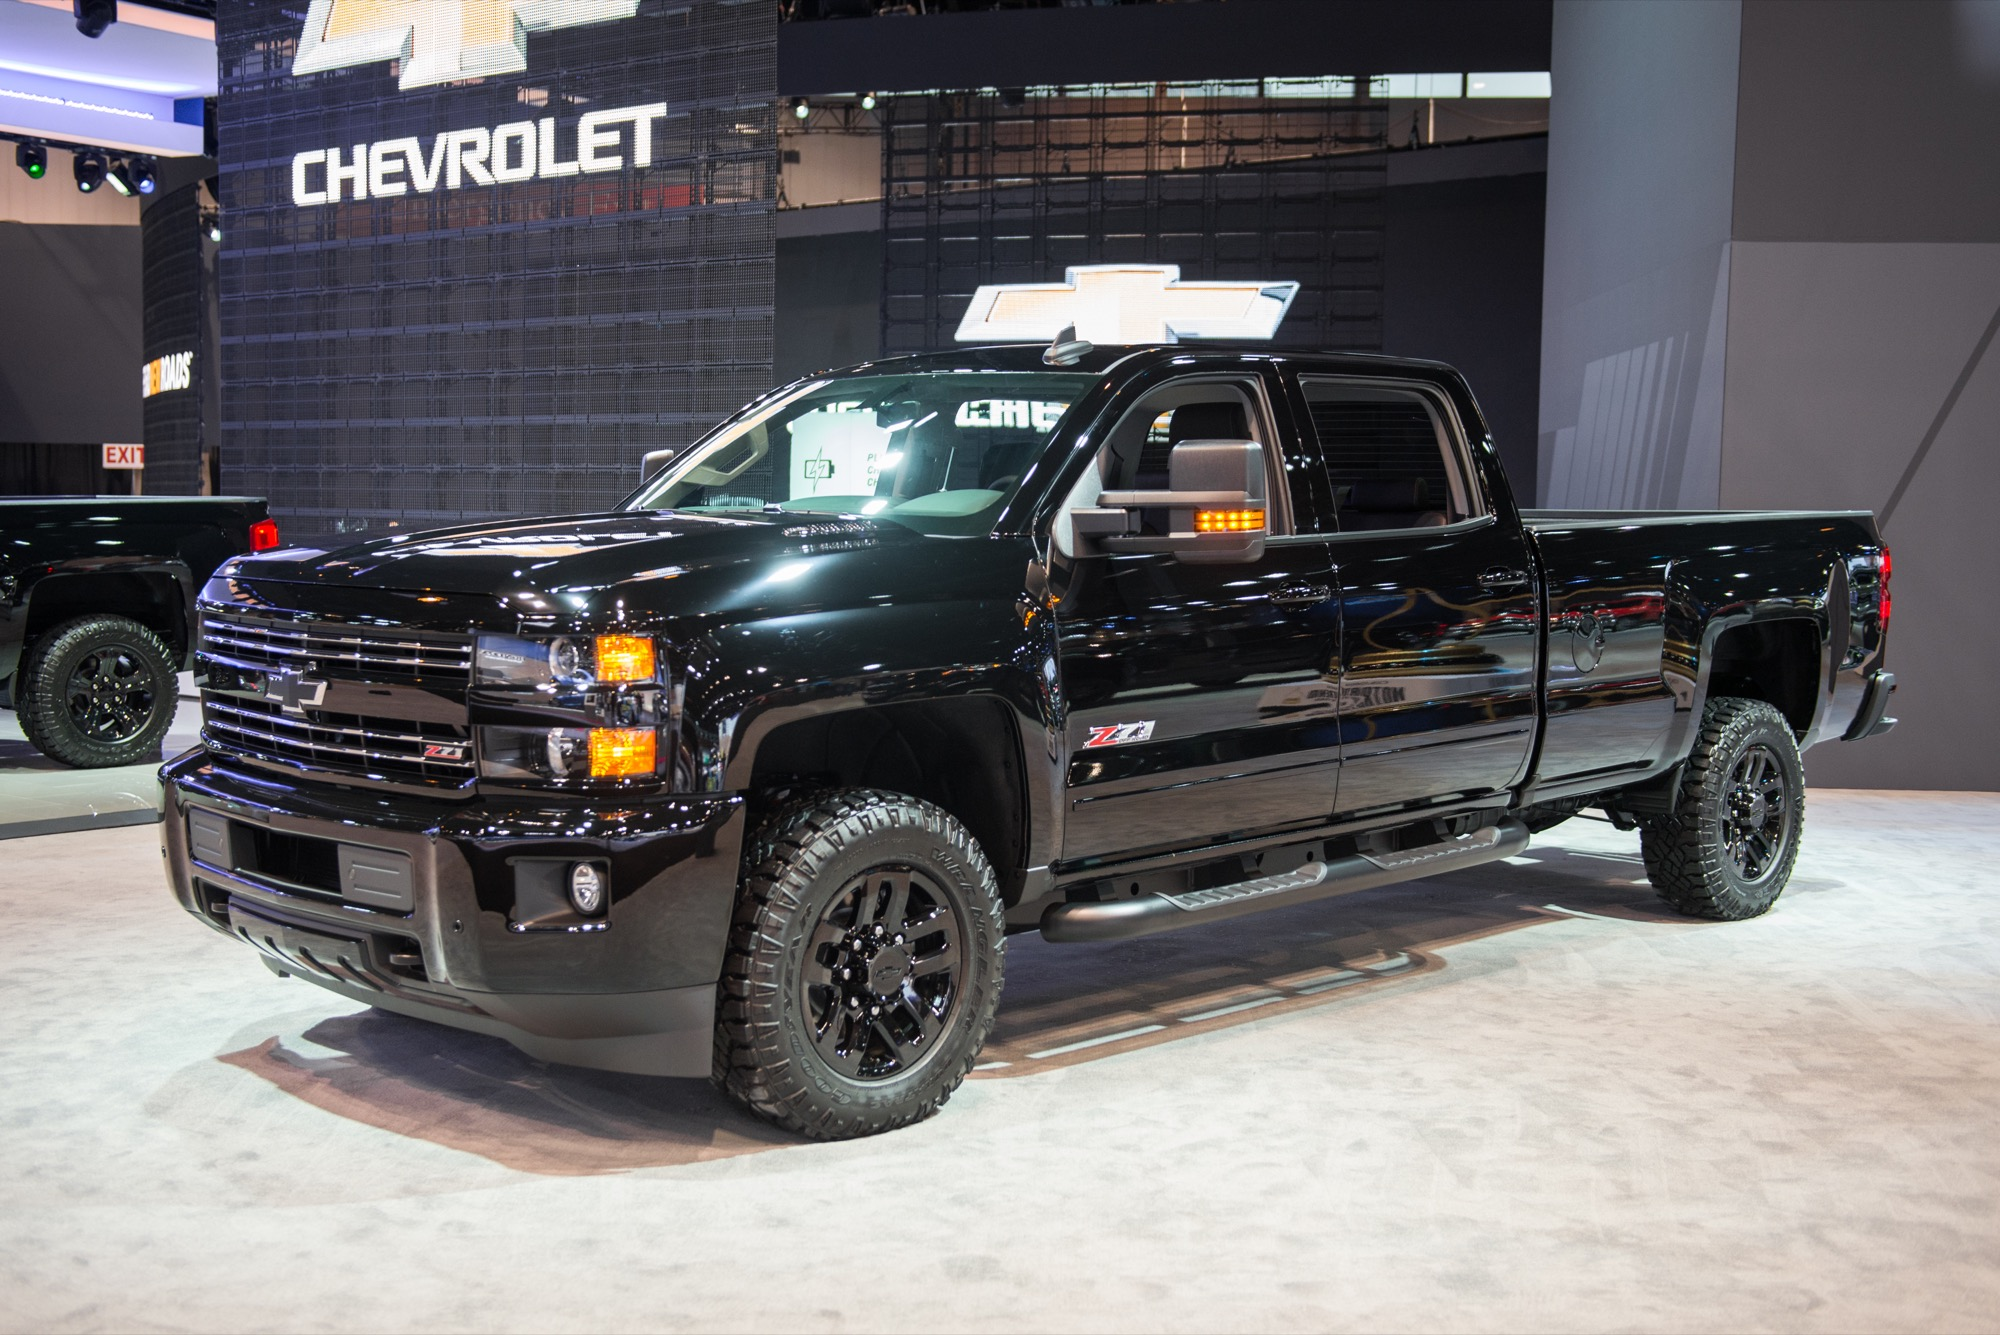 2016 chevrolet silverado 2500hd photos informations articles. Black Bedroom Furniture Sets. Home Design Ideas